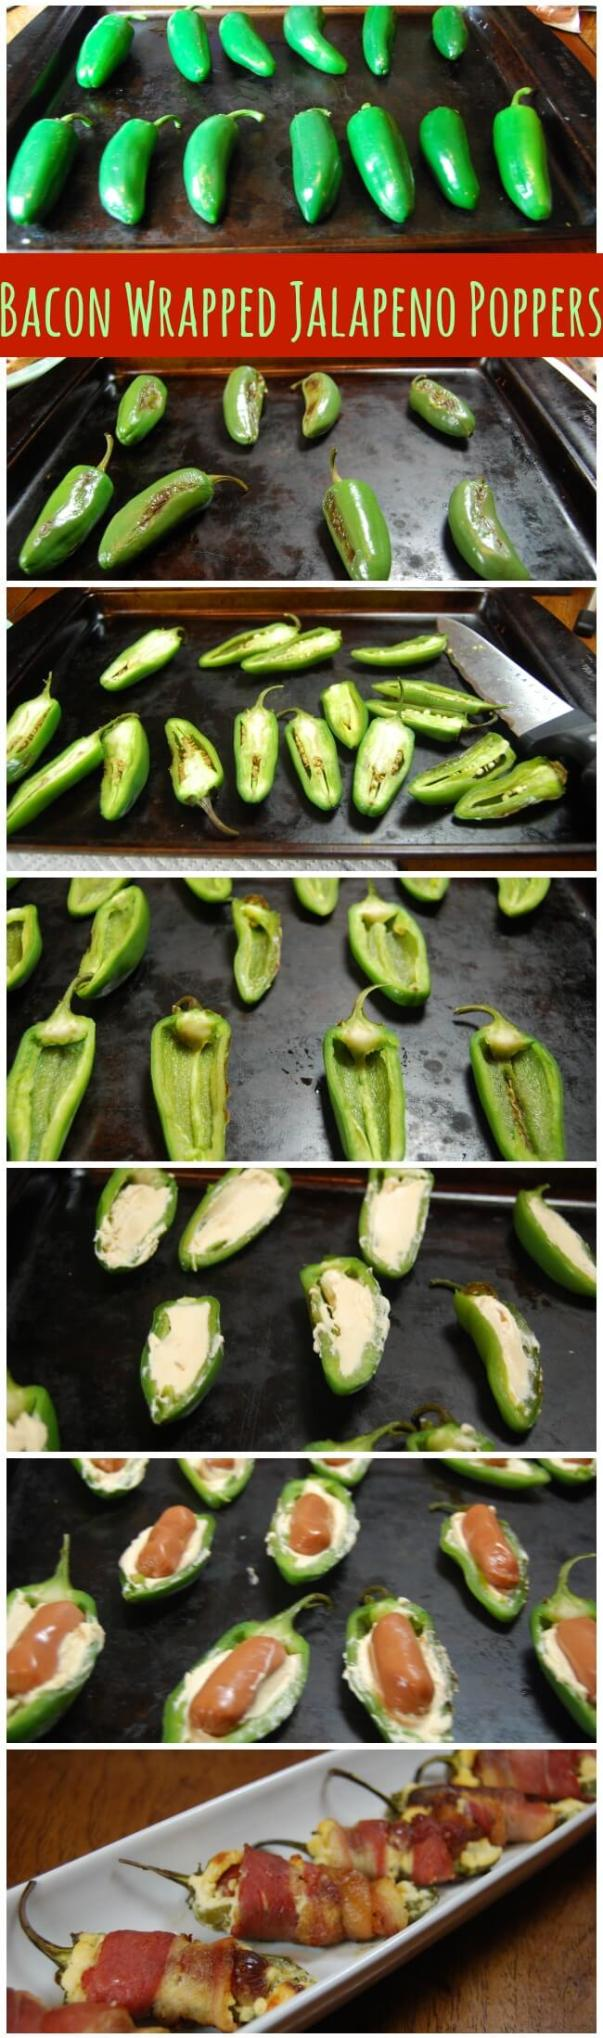 collage image to make stuffed bacon wrapped jalapeno poppers